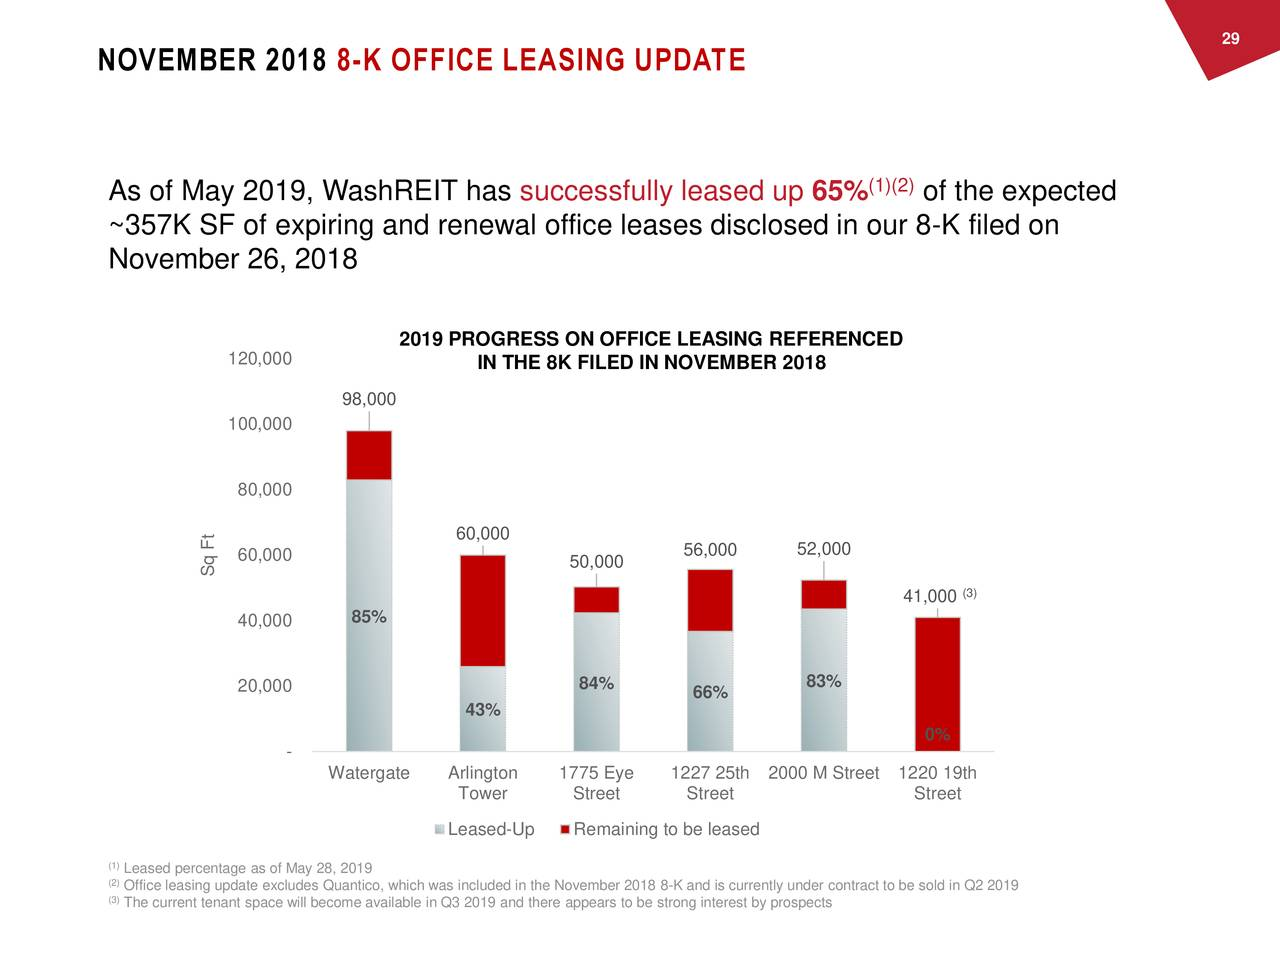 NOVEMBER 2018 8-K OFFICE LEASING UPDATE (1)(2) As of May 2019, WashREIT has successfully leased up 65% of the expected ~357K SF of expiring and renewal office leases disclosed in our 8-K filed on November 26, 2018 2019 PROGRESS ON OFFICE LEASING REFERENCED 120,000 IN THE 8K FILED IN NOVEMBER 2018 98,000 100,000 80,000 60,000 60,000 56,000 52,000 Sq Ft 50,000 (3) 41,000 40,000 85% 20,000 84% 66% 83% 43% 0% - Watergate Arlington 1775 Eye 1227 25th 2000 M Street 1220 19th Tower Street Street Street Leased-Up Remaining to be leased (1Leased percentage as of May 28, 2019 (2Office leasing update excludes Quantico, which was included in the November 2018 8-K and is currently under contract to be sold in Q2 2019 (3The current tenant space will become available in Q3 2019 and there appears to be strong interest by prospects